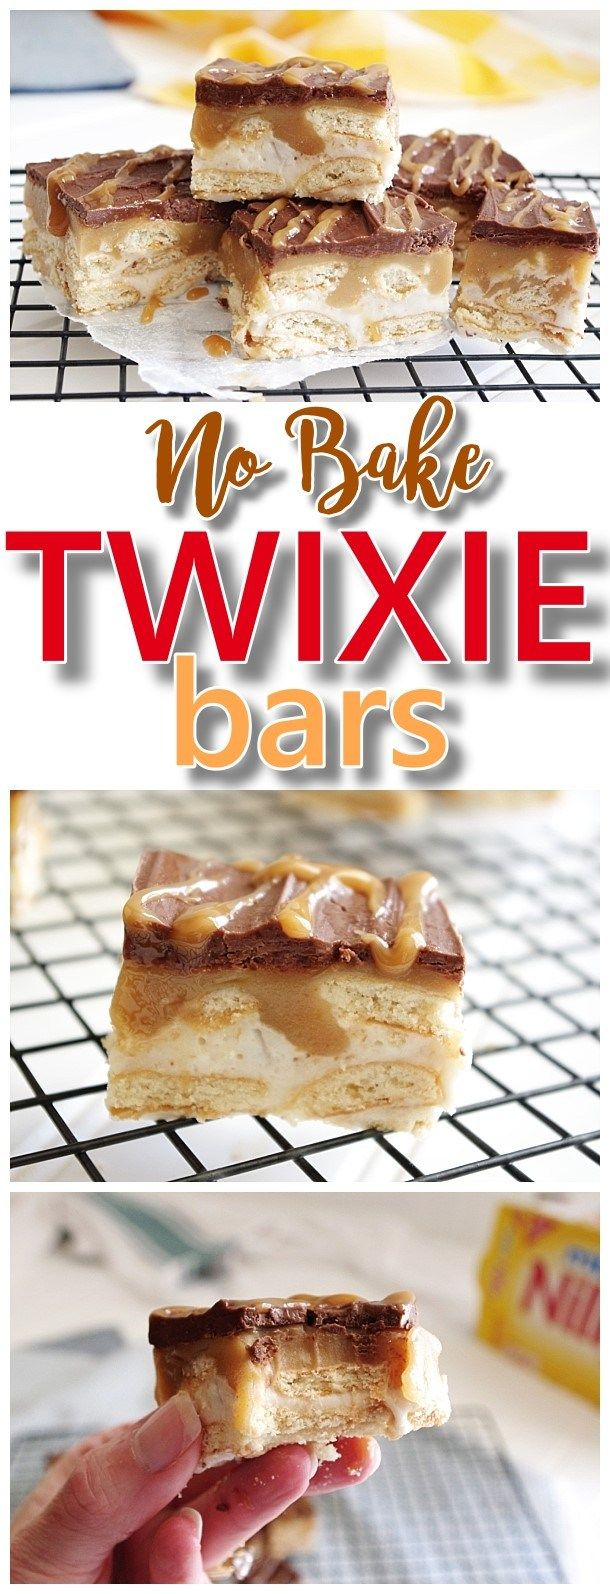 No Bake Twixie Cookie Bars Caramel Chocolate Mini Nilla Wafer Cookies Easy Dessert Treats Recipe Recipe Easy No Bake Desserts Desserts Baking